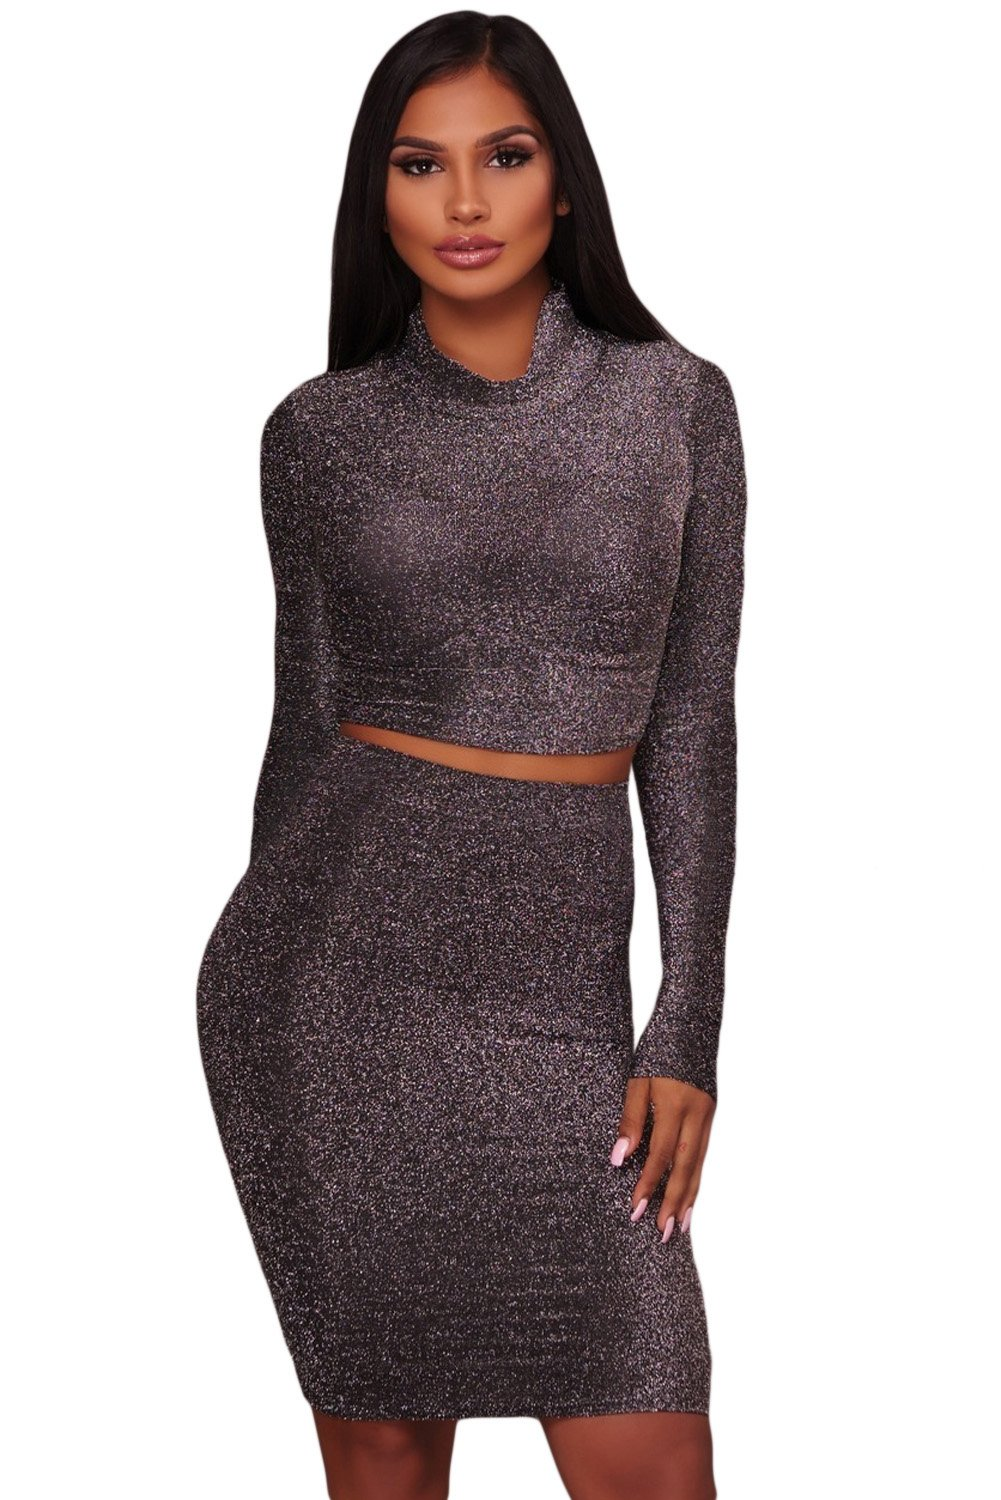 Black silver shimmer two piece dress womens fashion pinterest